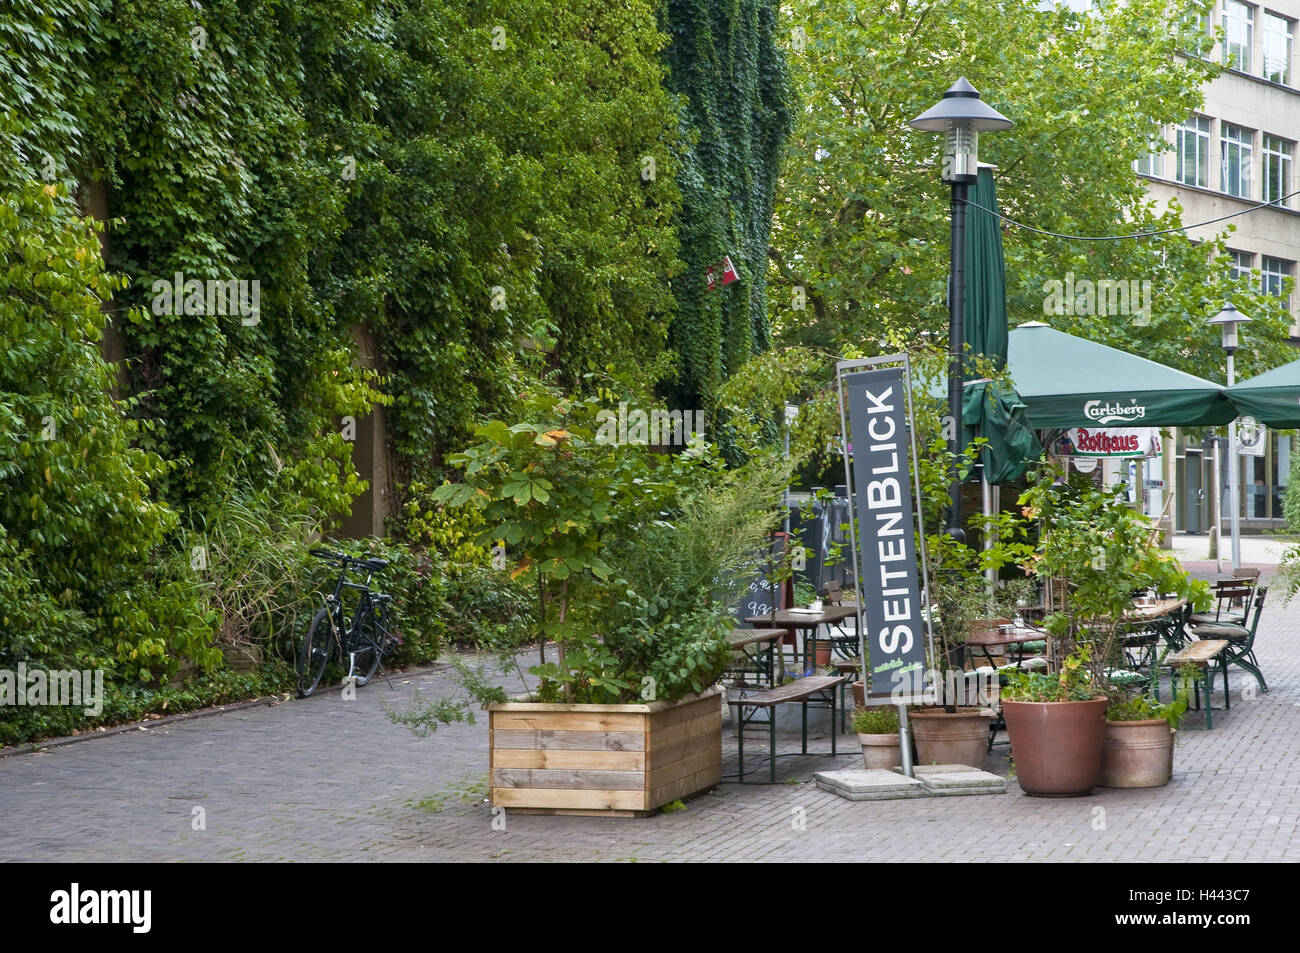 Street cafe 'side glance', lane Trentel, food, North Rhine-Westphalia, Germany, - Stock Image